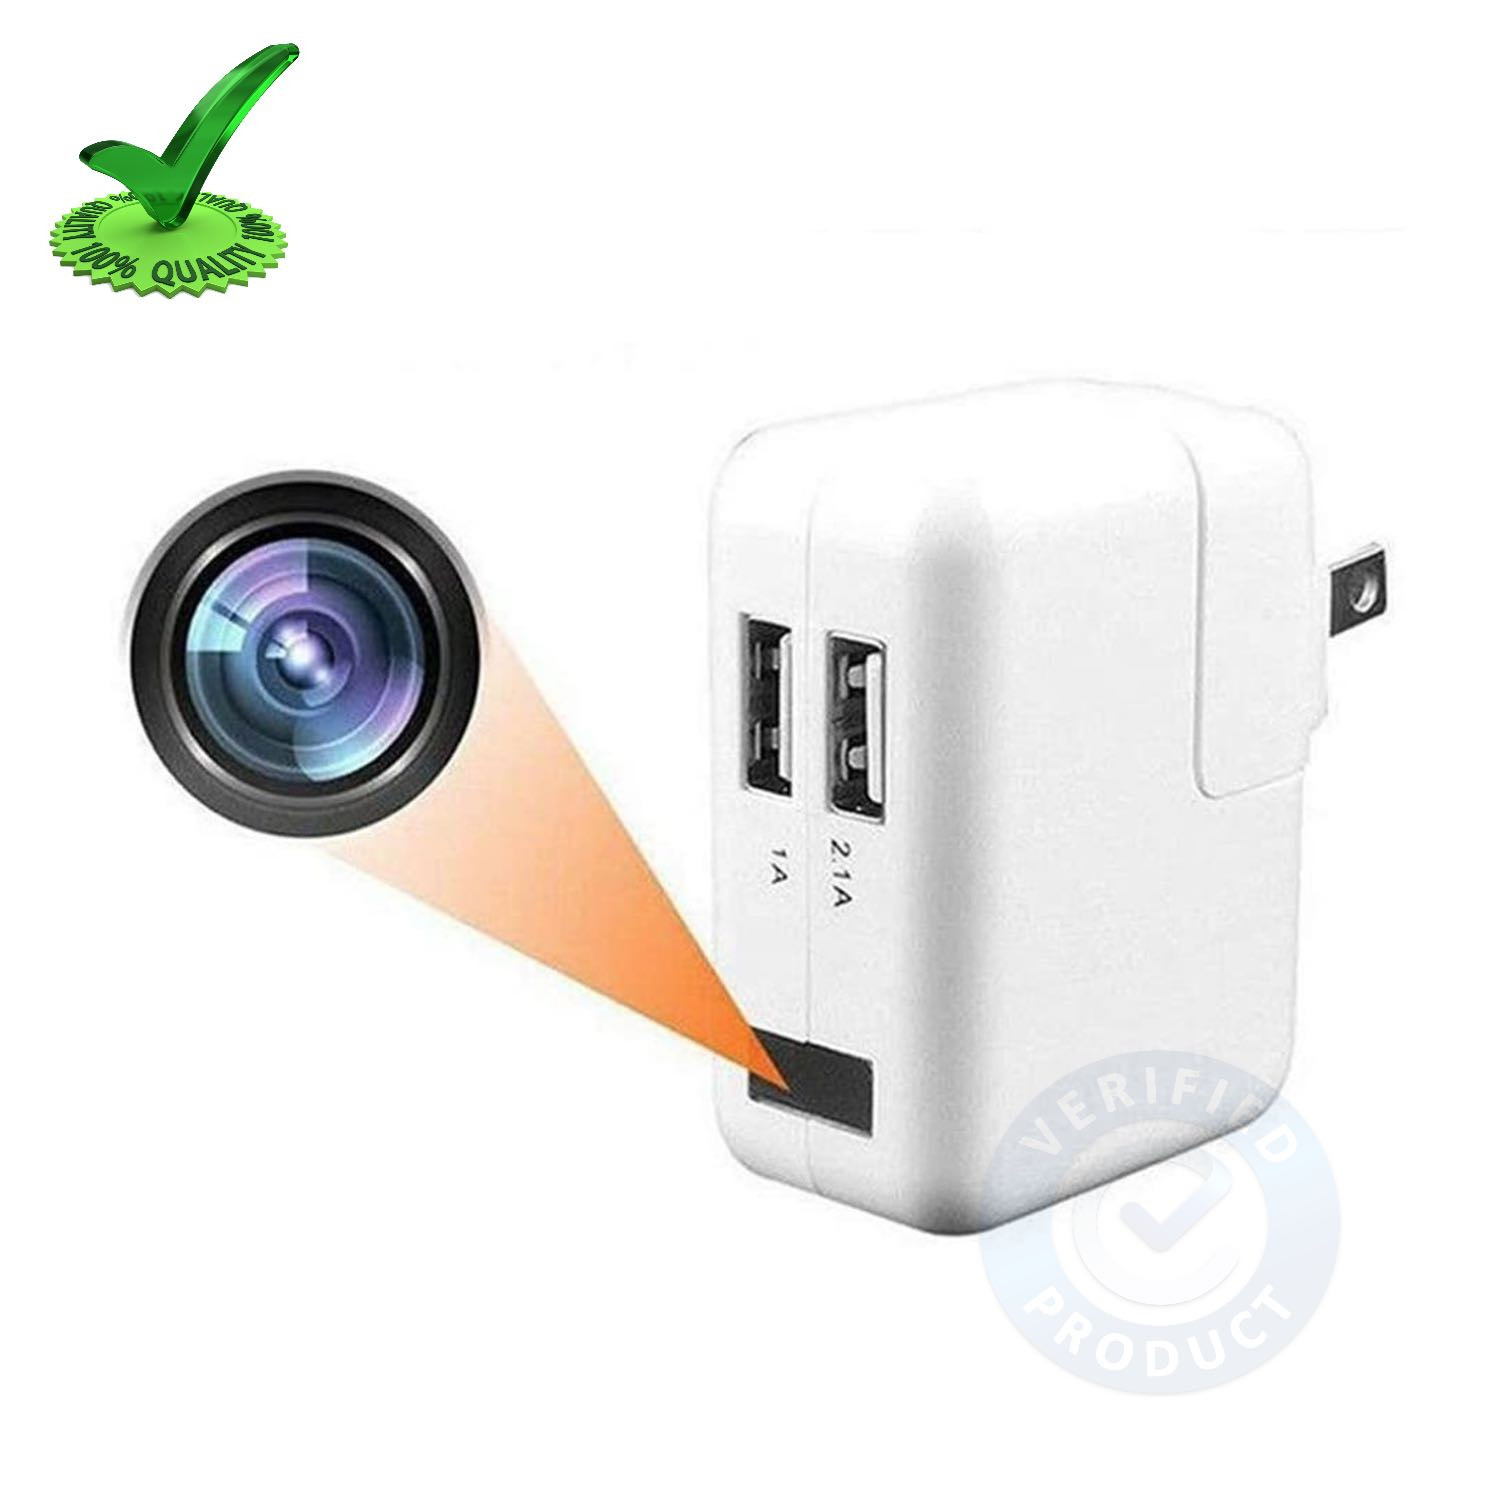 WiFi Spy Hidden Camera with Recorder in Apple Usb Charger